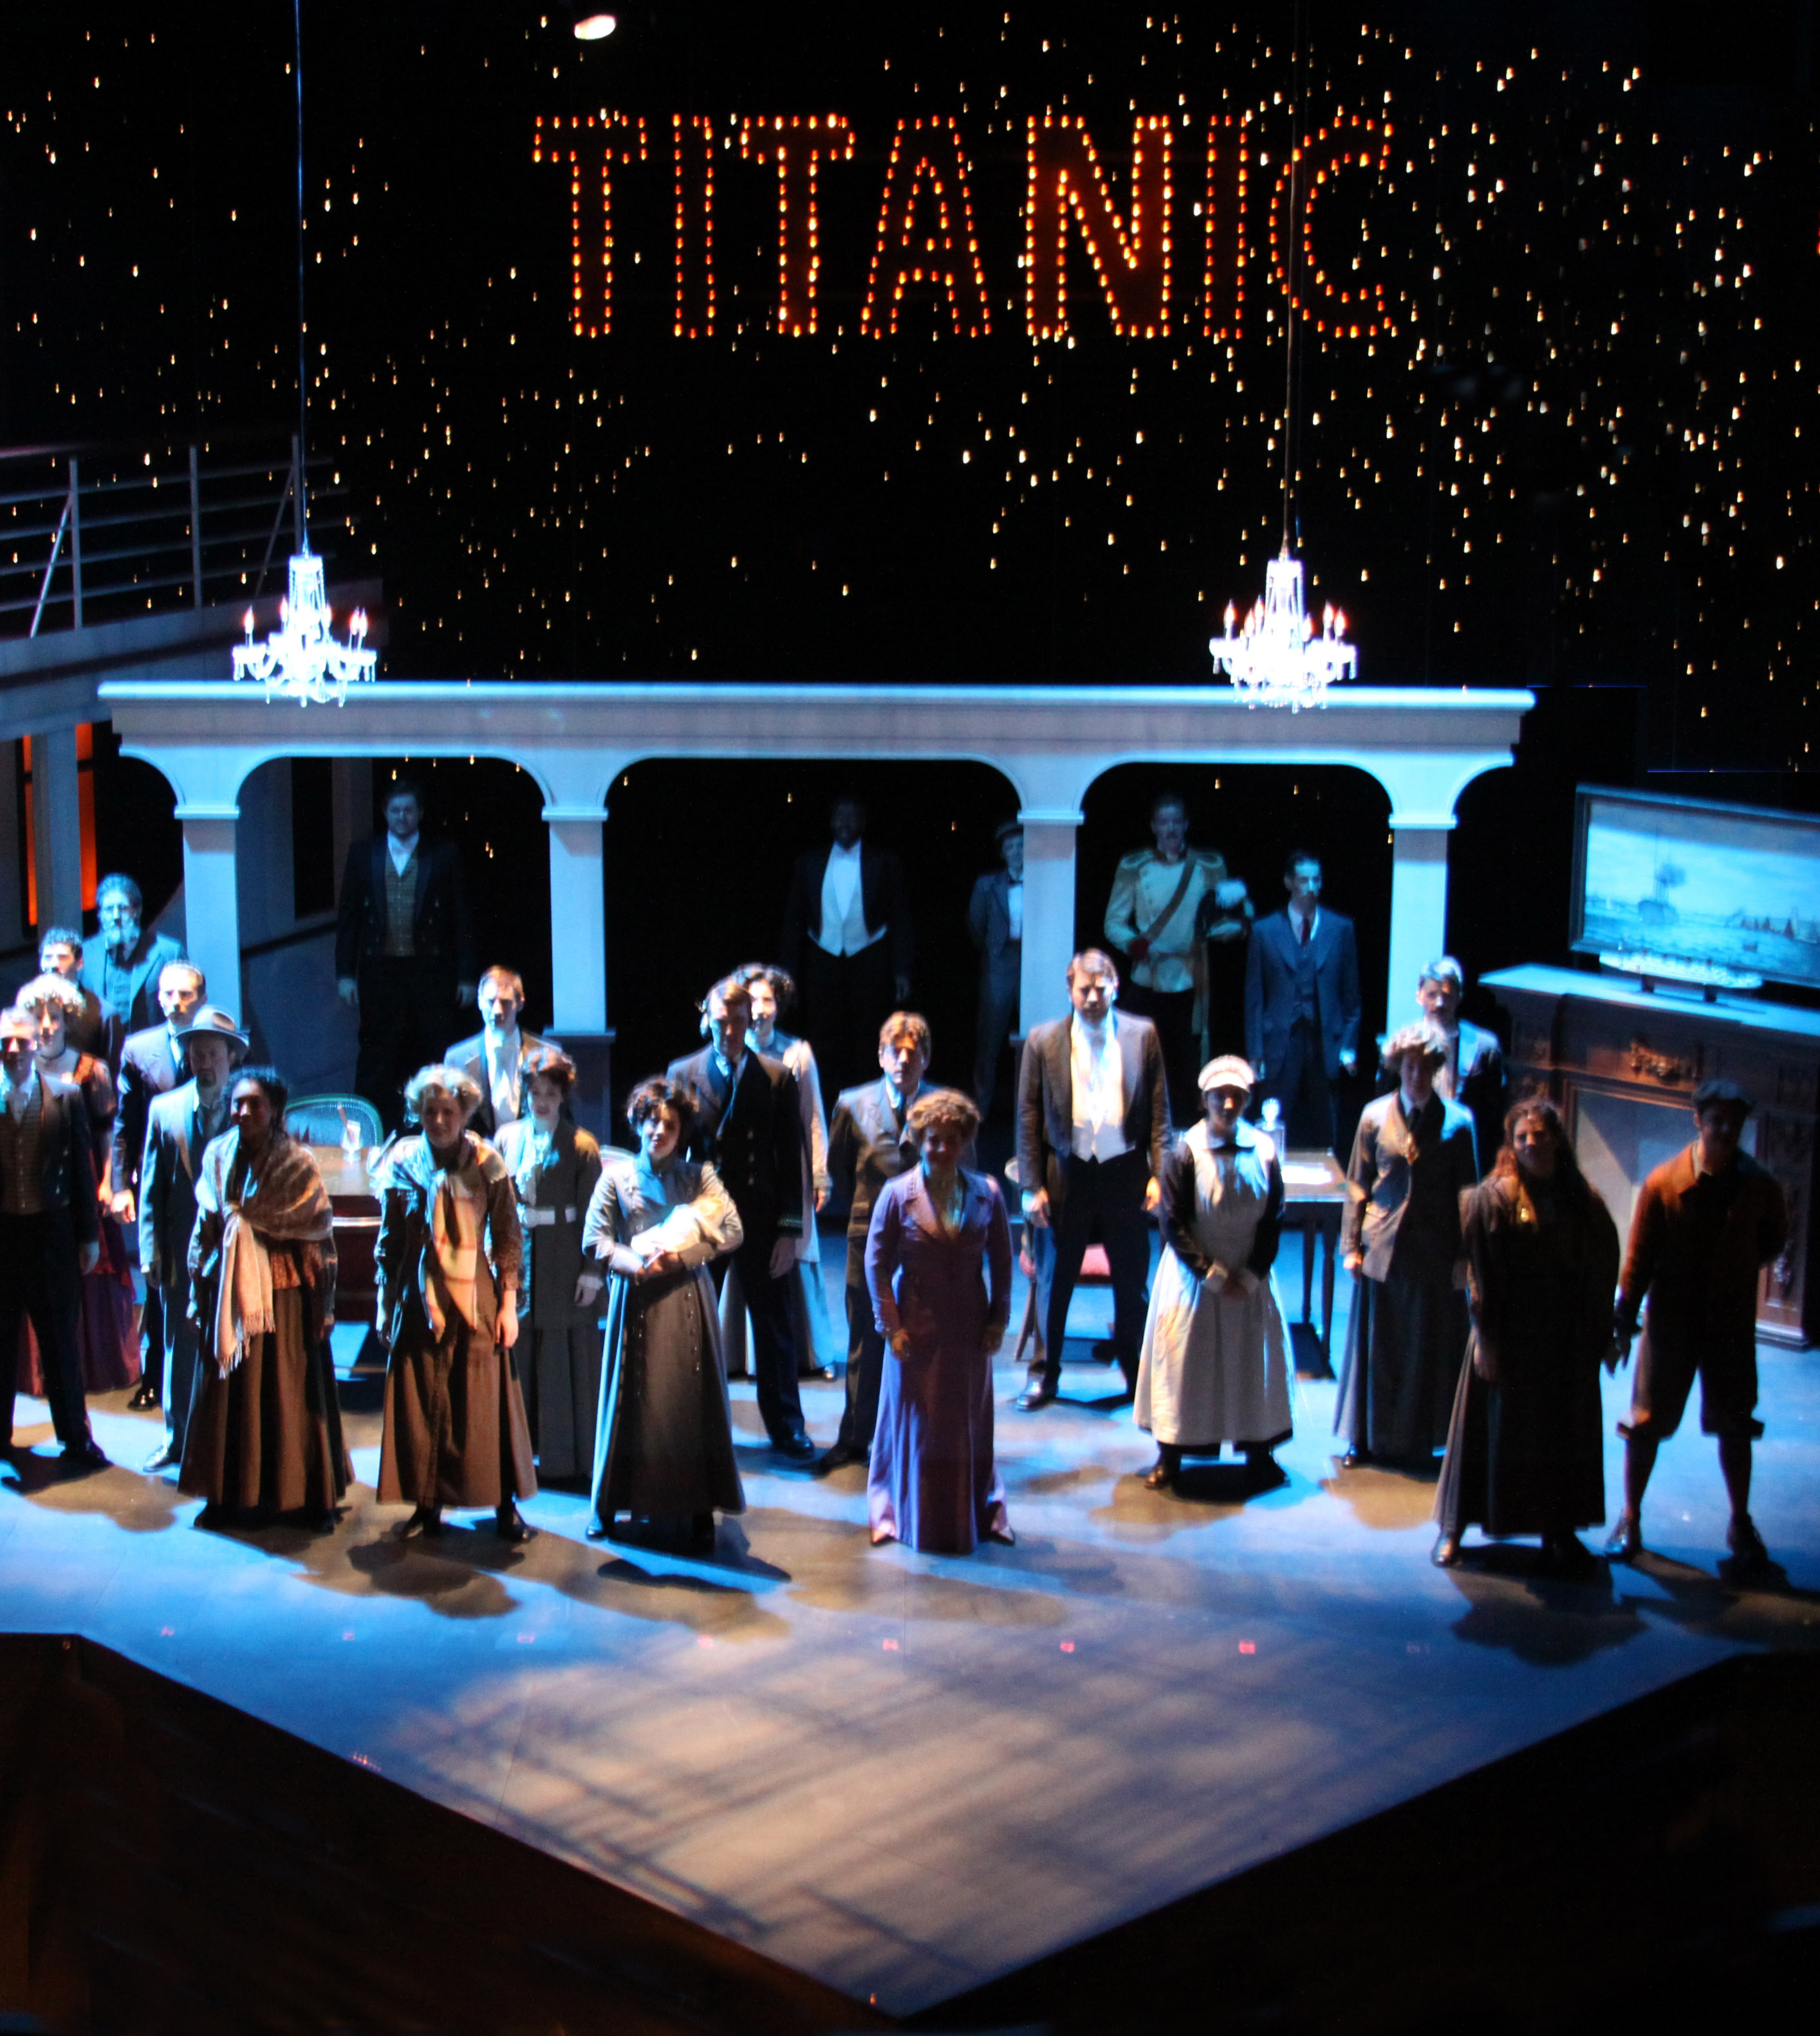 Titanic The Musical  Department of Theatre Dance and Motion Pictures  College of Liberal